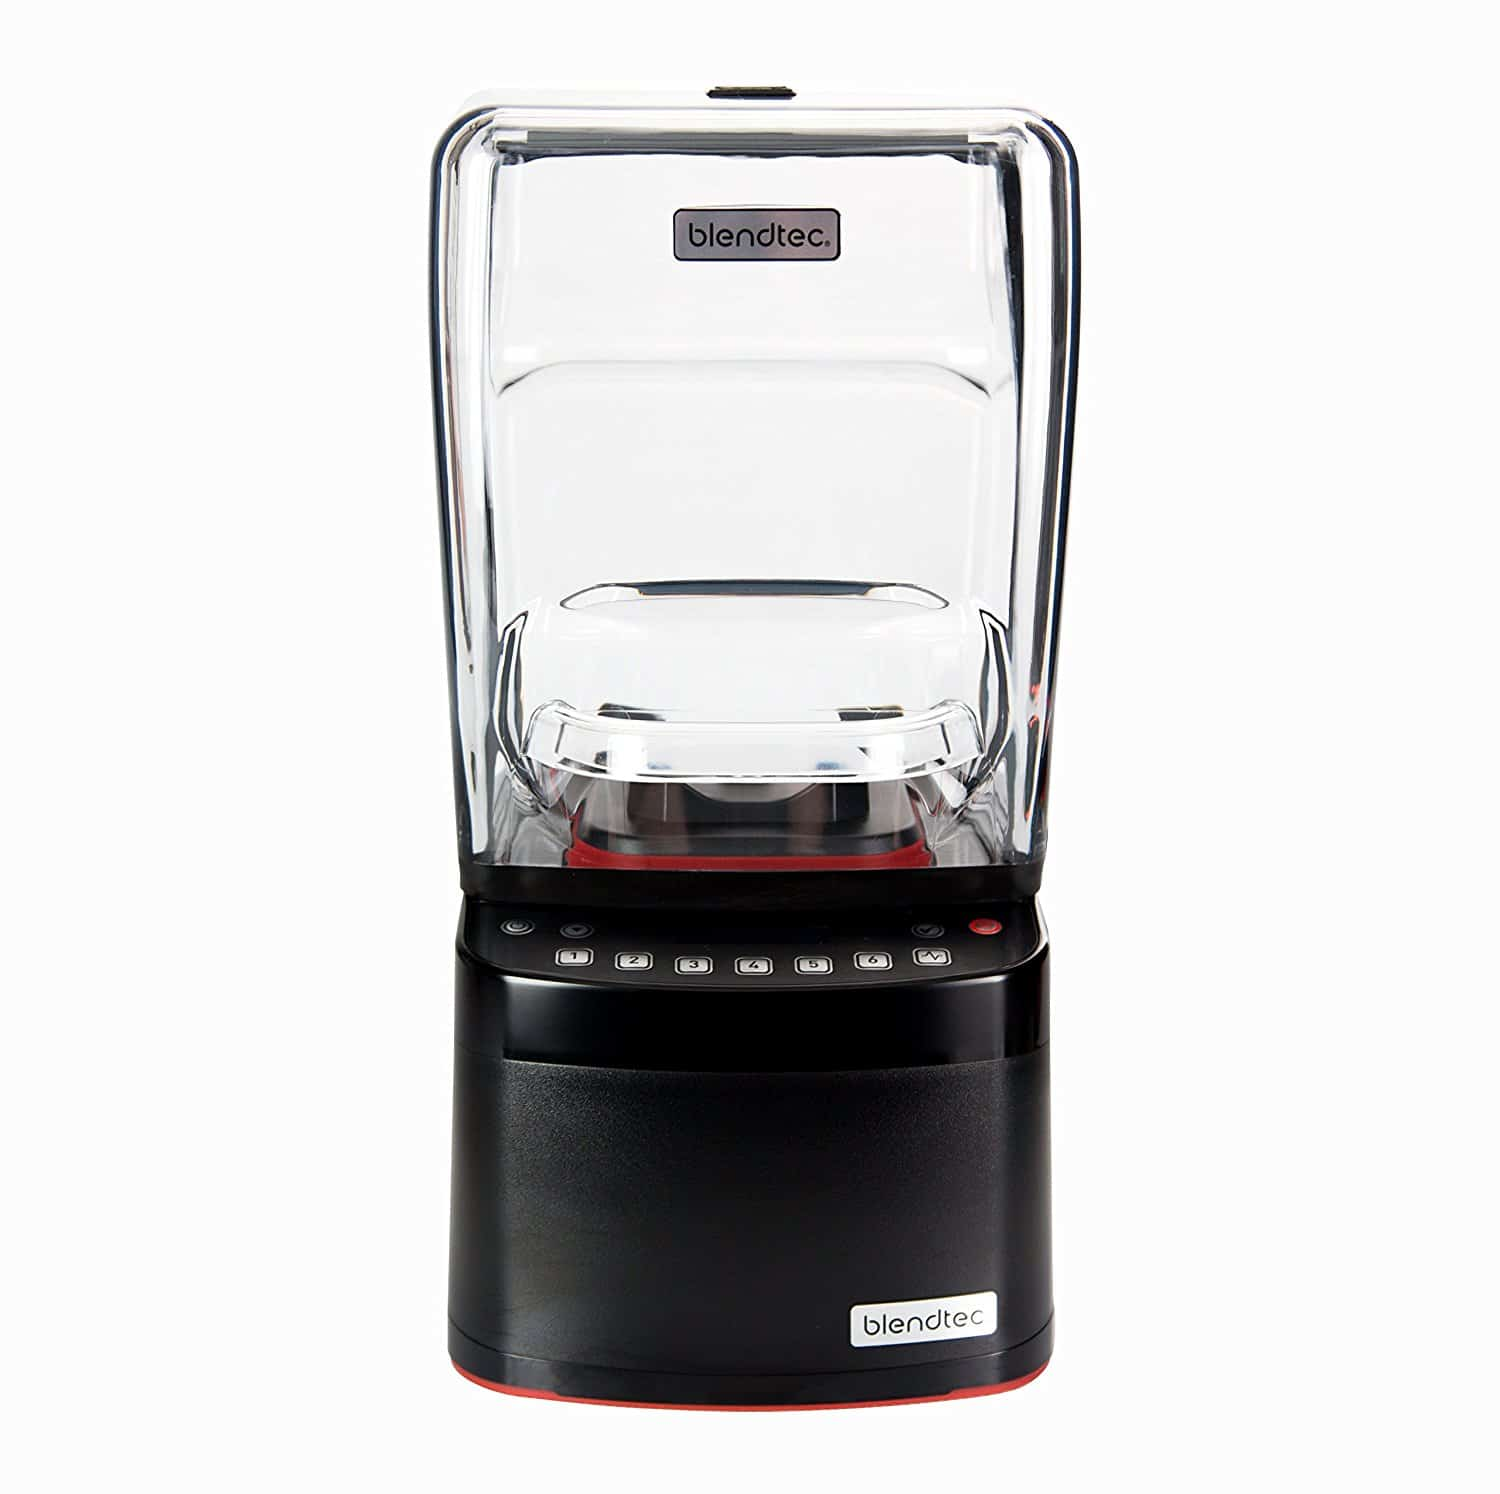 BlendTec Stealth + 5 FREE Bags of Cappuccine